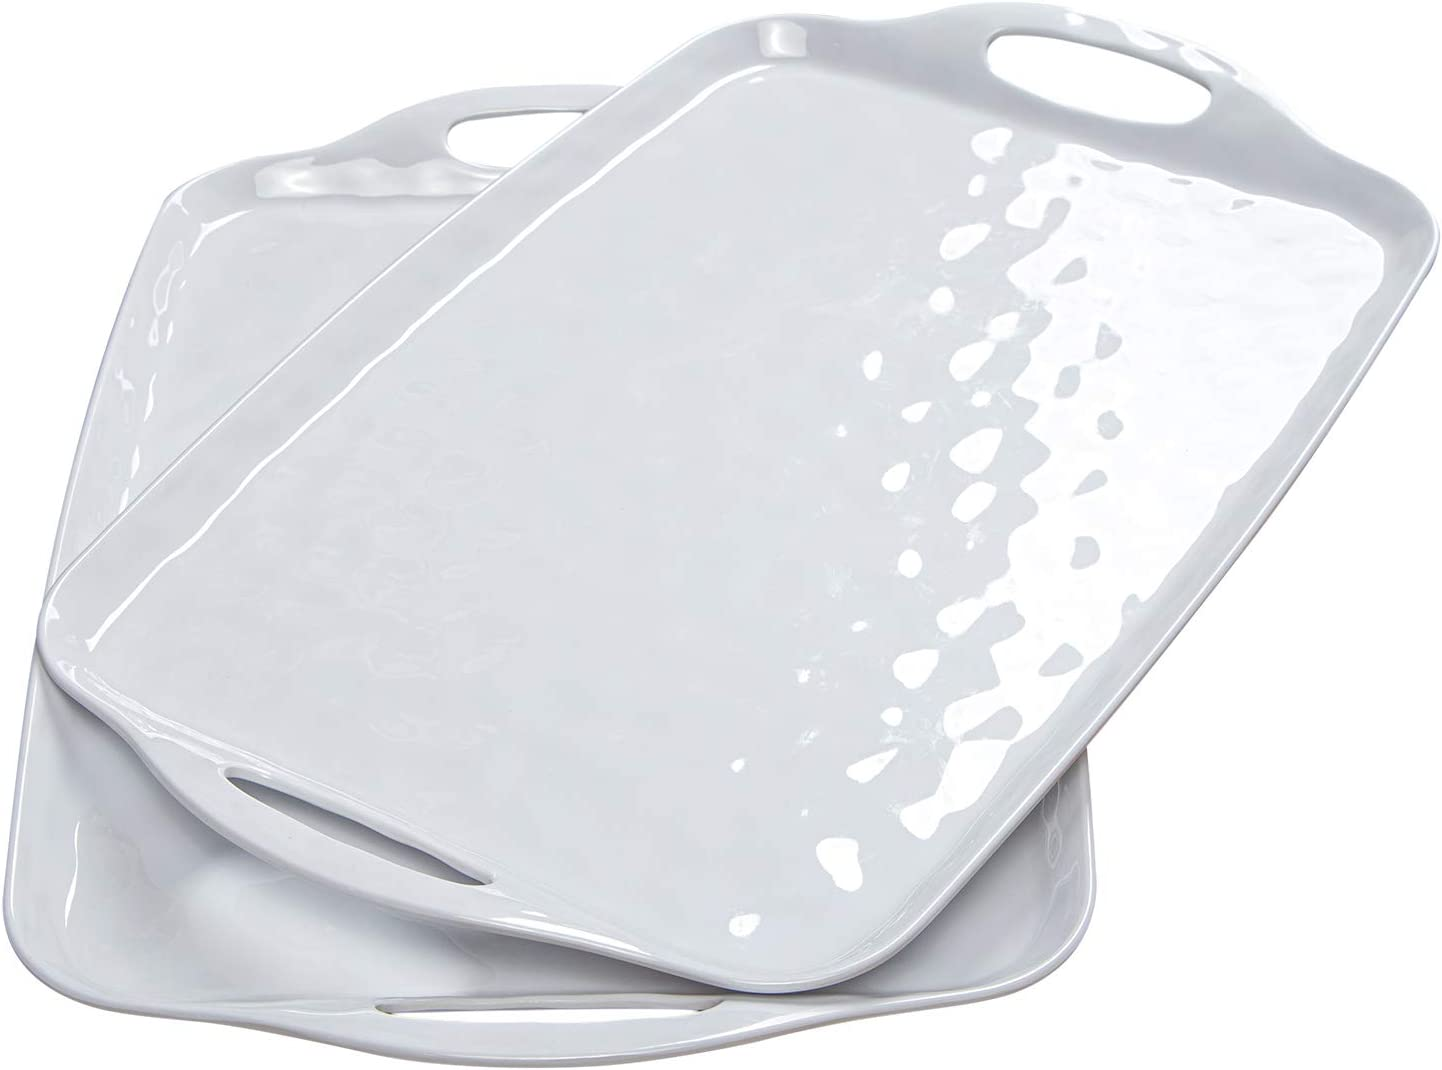 "TP Serving Tray with Handles, Large Rectangle Melamine Serving Platter Set of 2, White (19"" x 12"")"